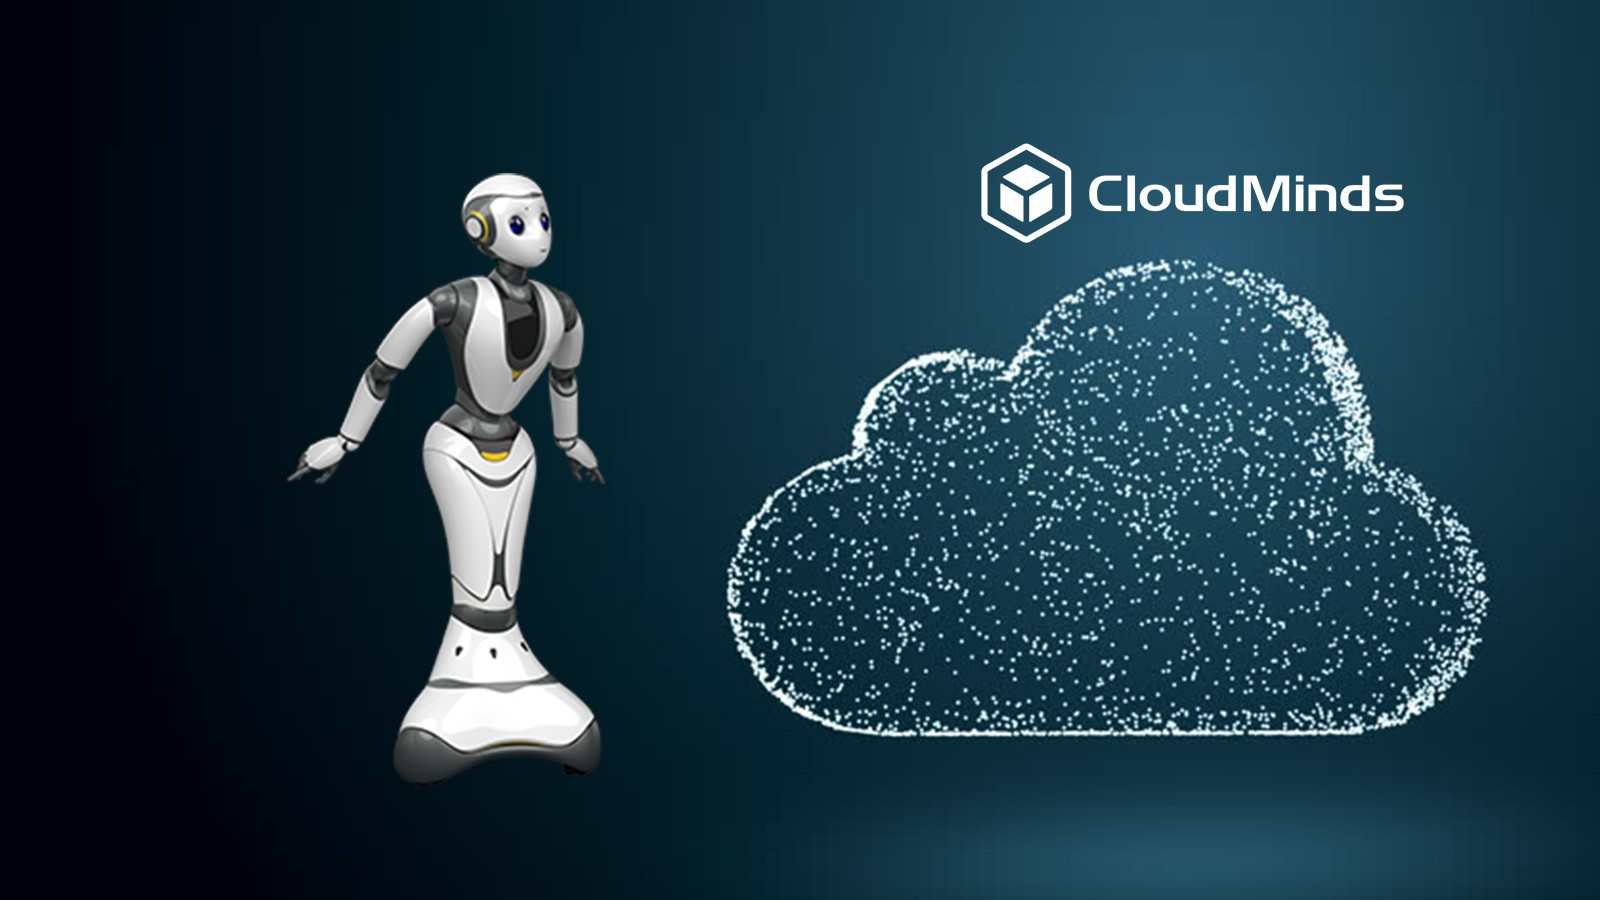 CloudMinds-Accelerates-Global-Expansion_-Elevates-Cloud-AI-Robot-Support-Through-Latin-America